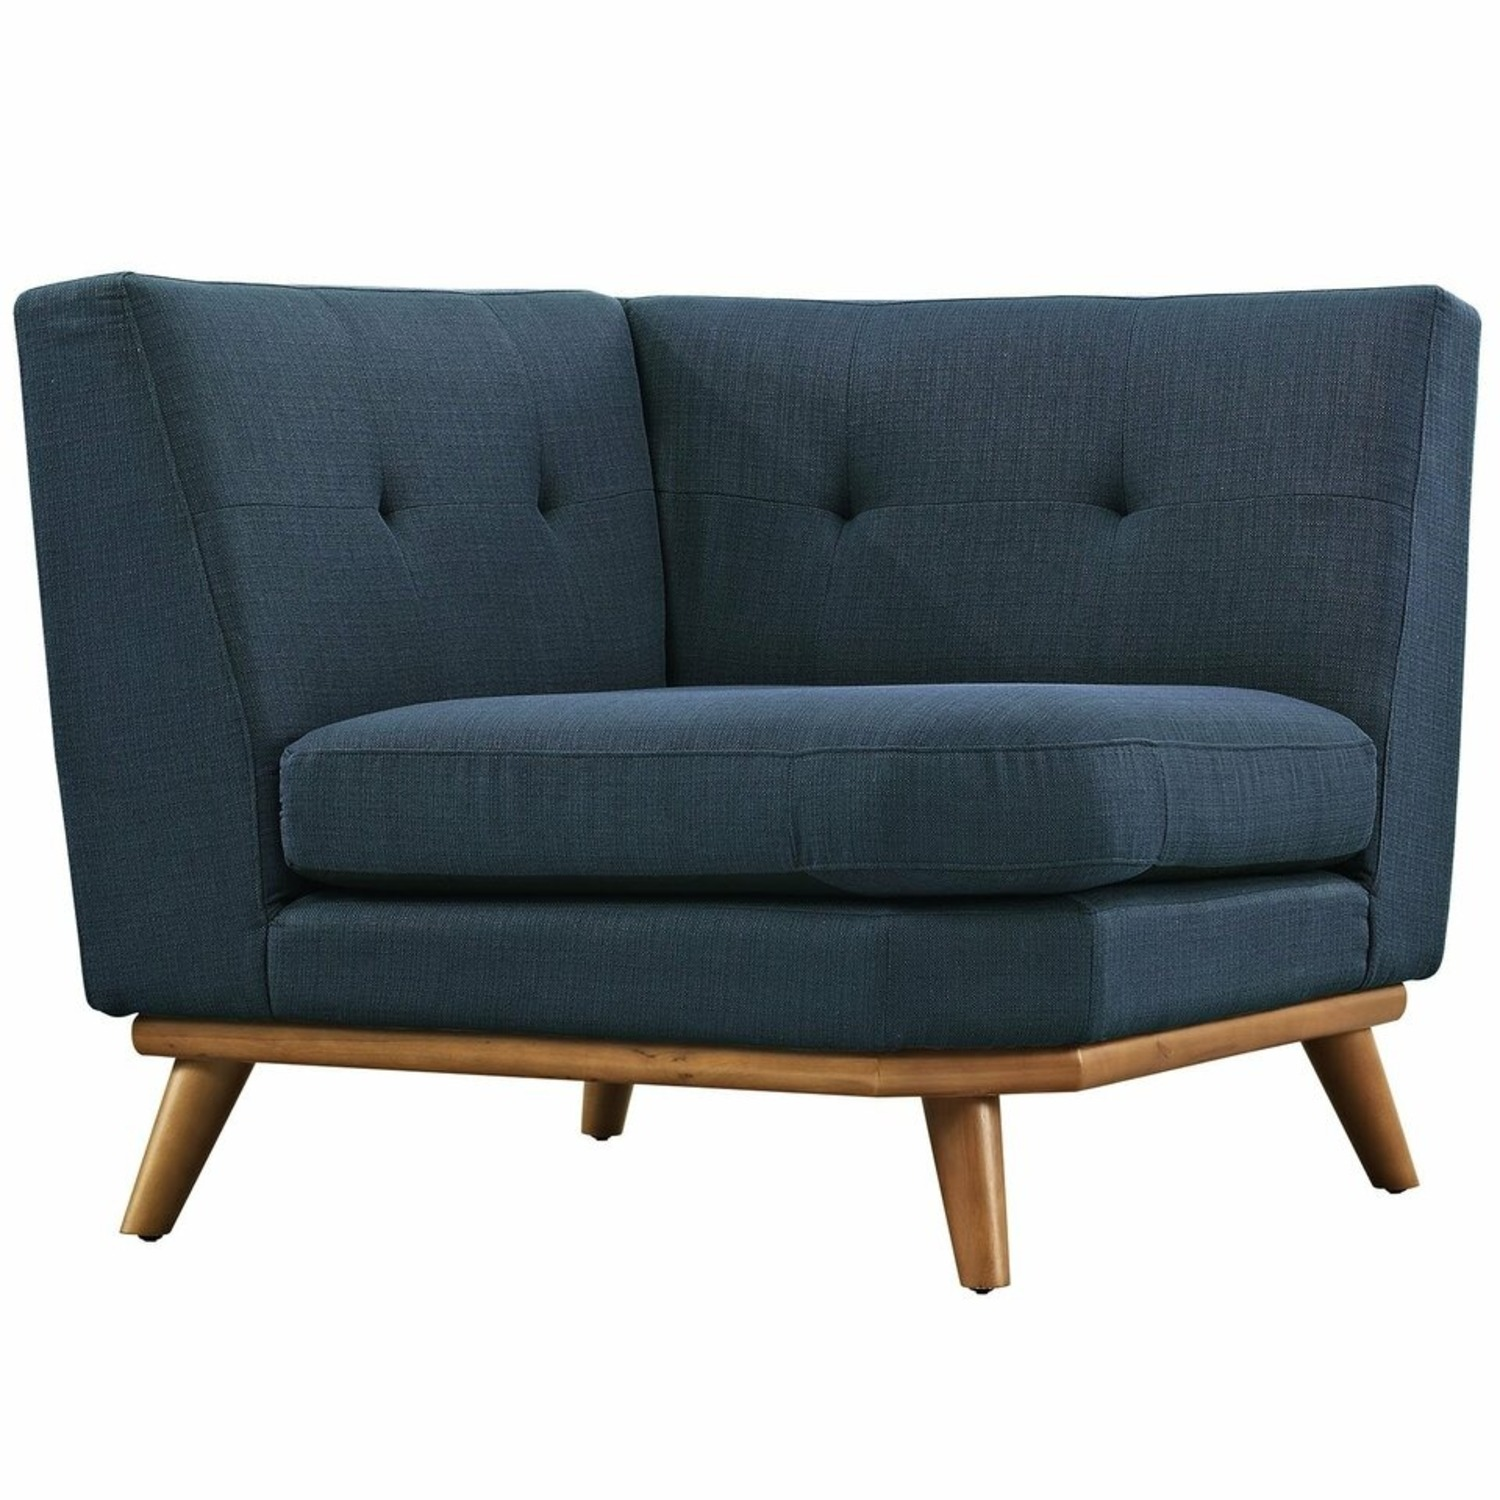 3-Piece L-Shaped Sectional In Azure Upholstery - image-2